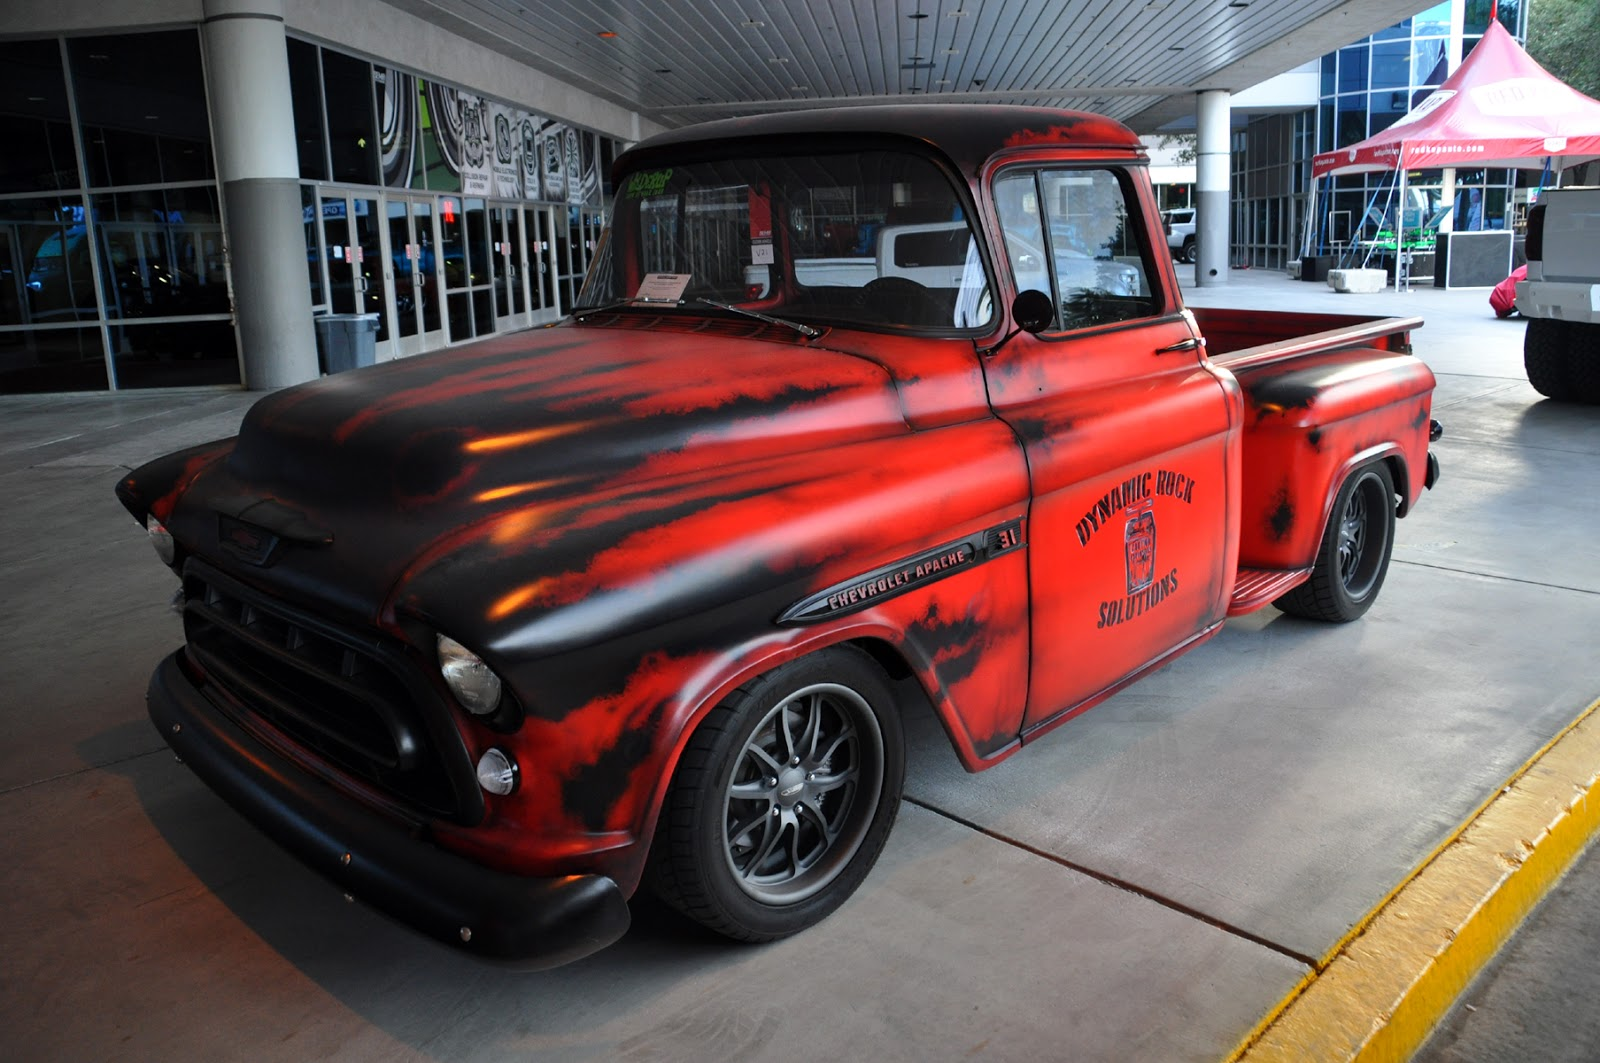 Just A Car Guy: Lots of cool old trucks at SEMA this year